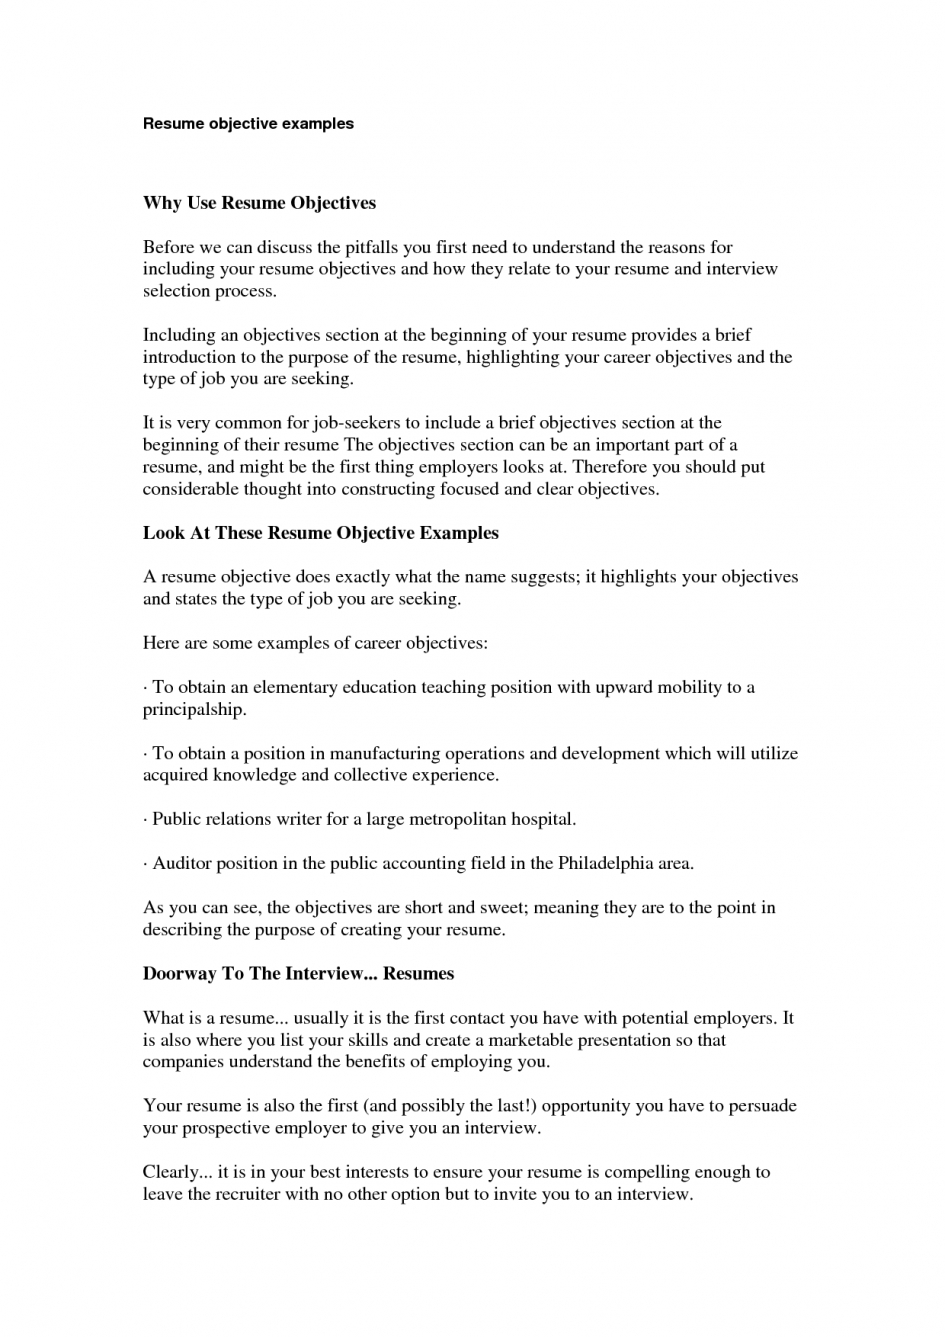 saleslady resume objectives for basic objective examples career resumes sample - Basic Resume Objective Examples